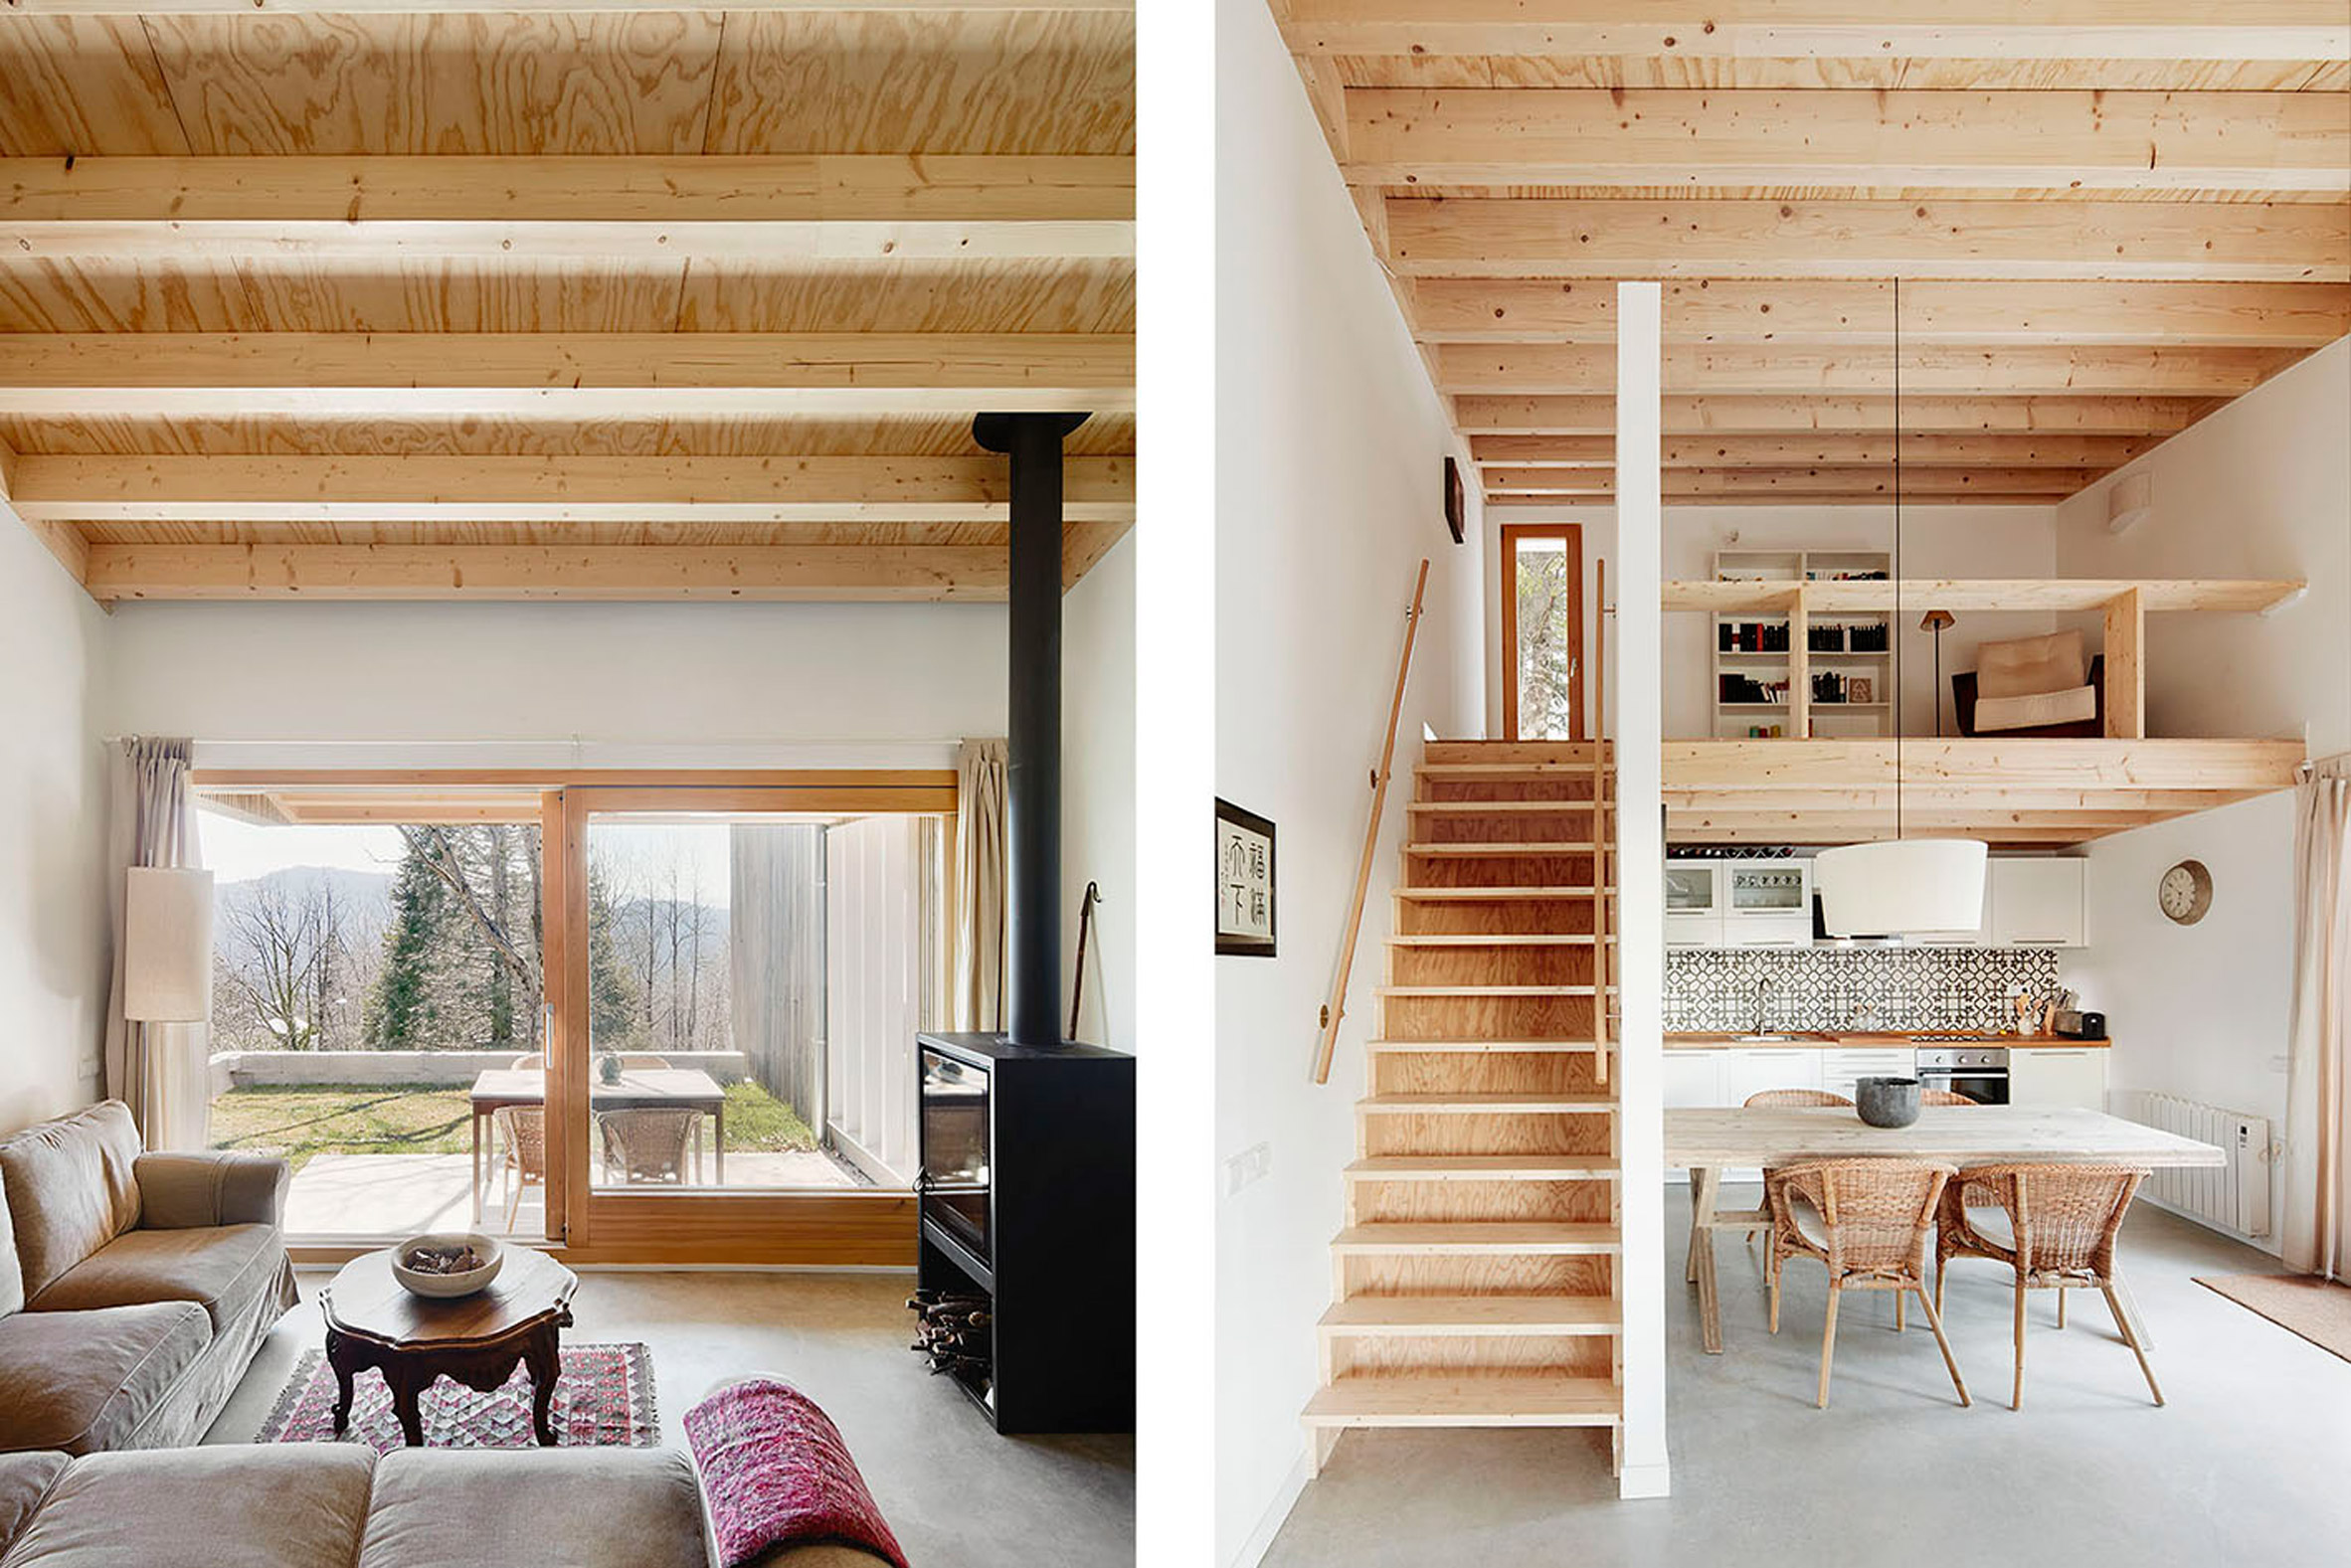 4. Prefababricated wooden home in the Pyrenees by architect Marc Mogas - Prefabricated wooden home in the Pyrenees by architect Marc Mogas